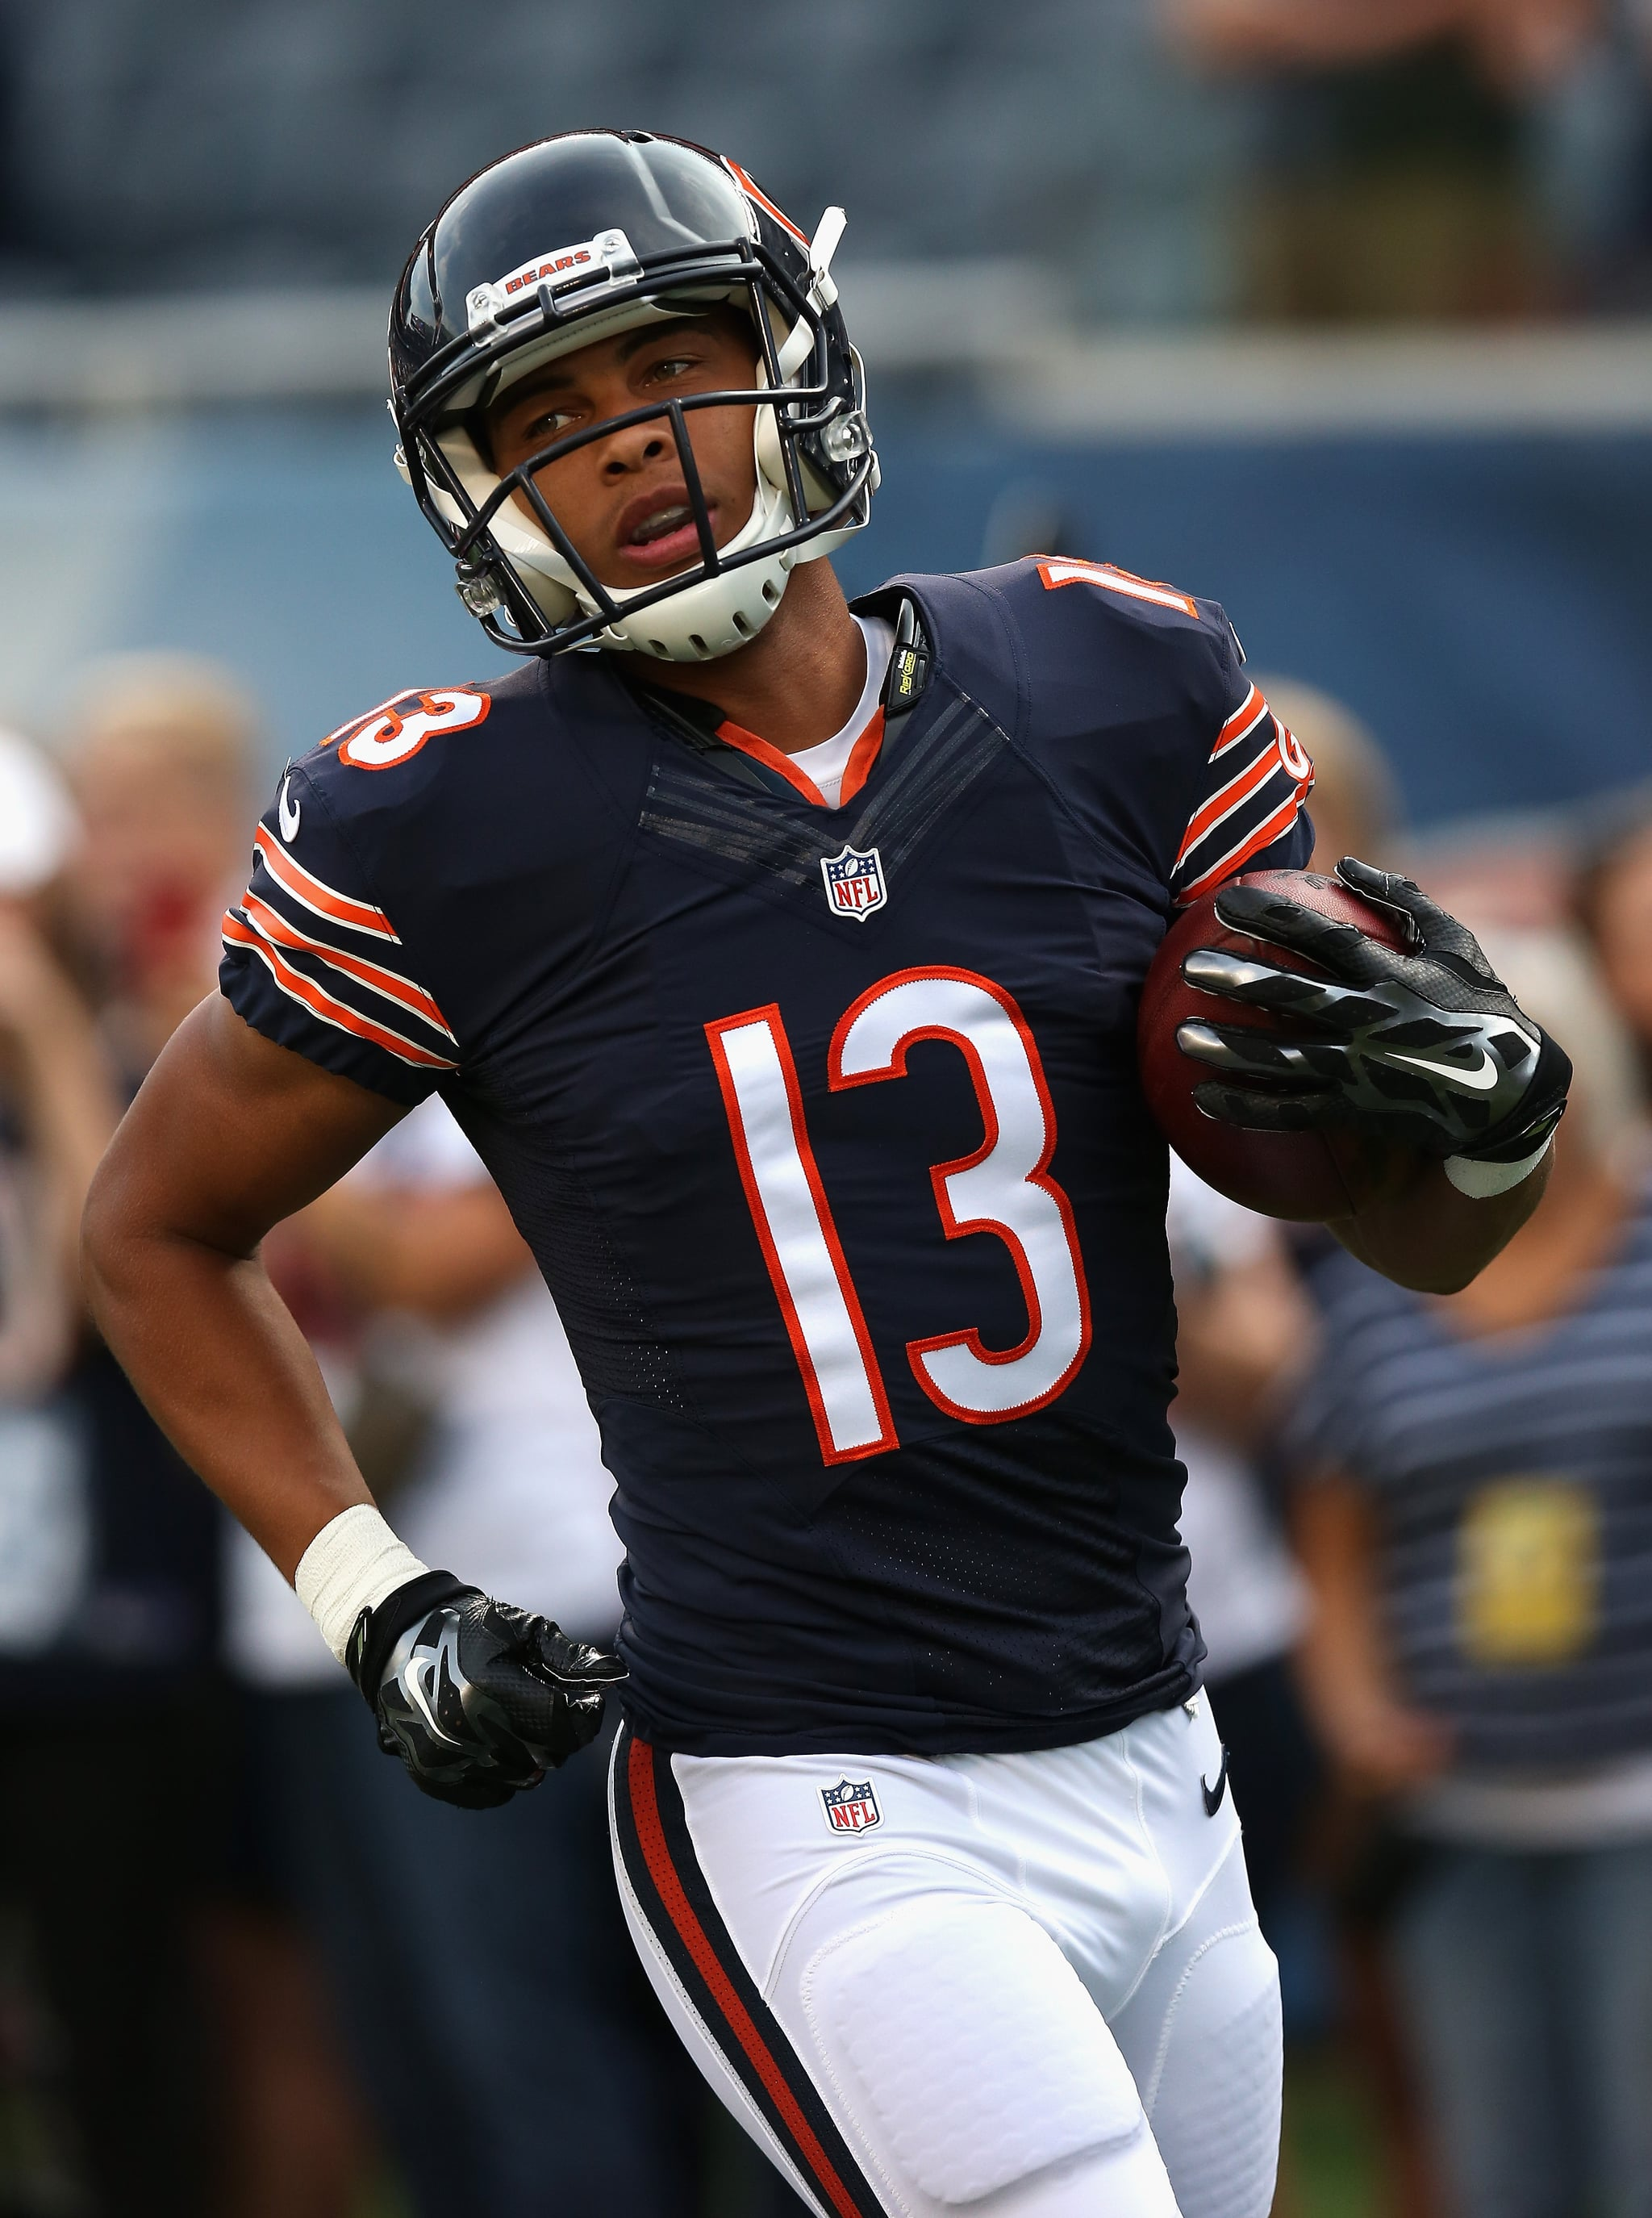 CHICAGO, IL - AUGUST 08:  Dale Moss #13 of the Chicago Bears participates in warm-ups before a preseason game against the Philadelphia Eagles at Soldier Field on August 8, 2014 in Chicago, Illinois. The Bears defeated the Eagles 34-28.  (Photo by Jonathan Daniel/Getty Images)